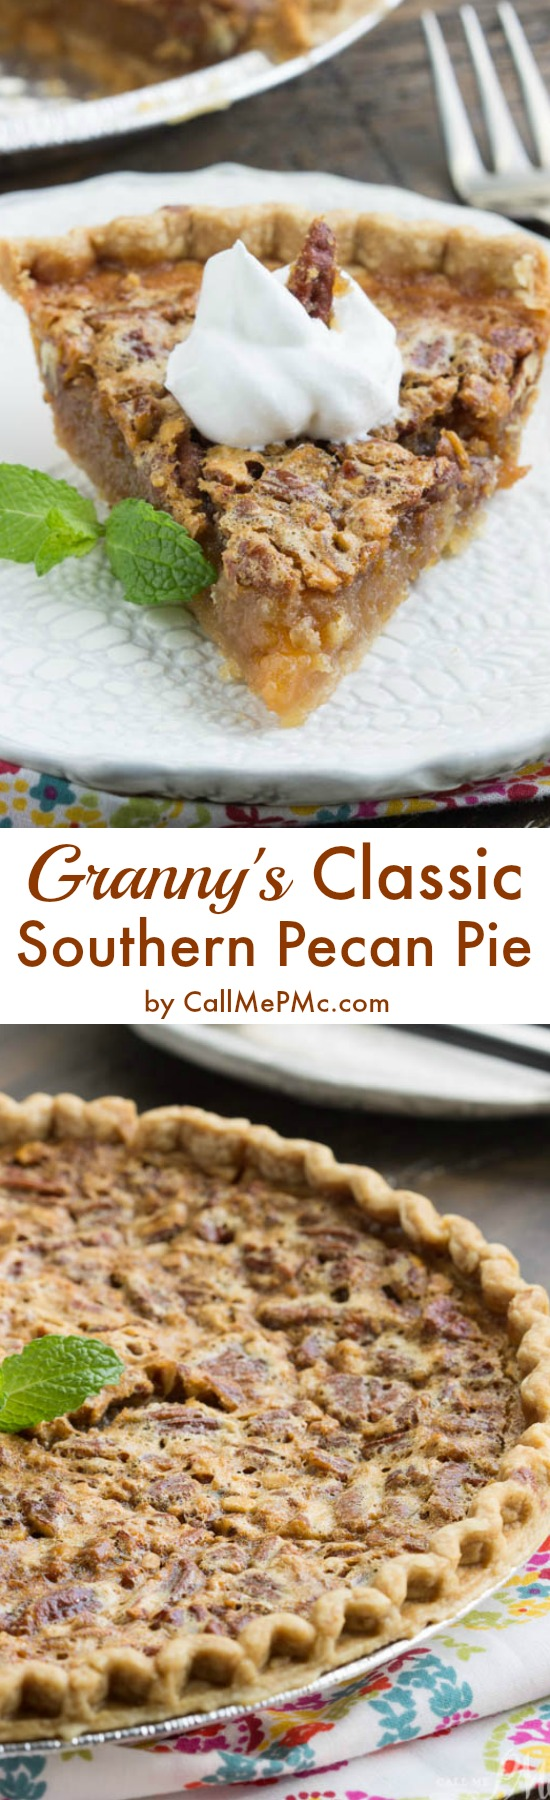 super simple crowd-pleasing dessert recipe. Granny's Classic Southern Pecan Pie This delicious pie is a holiday staple in most Southern celebrations with the crunchy pecans, caramel-like nougat, and buttery flaky crust.